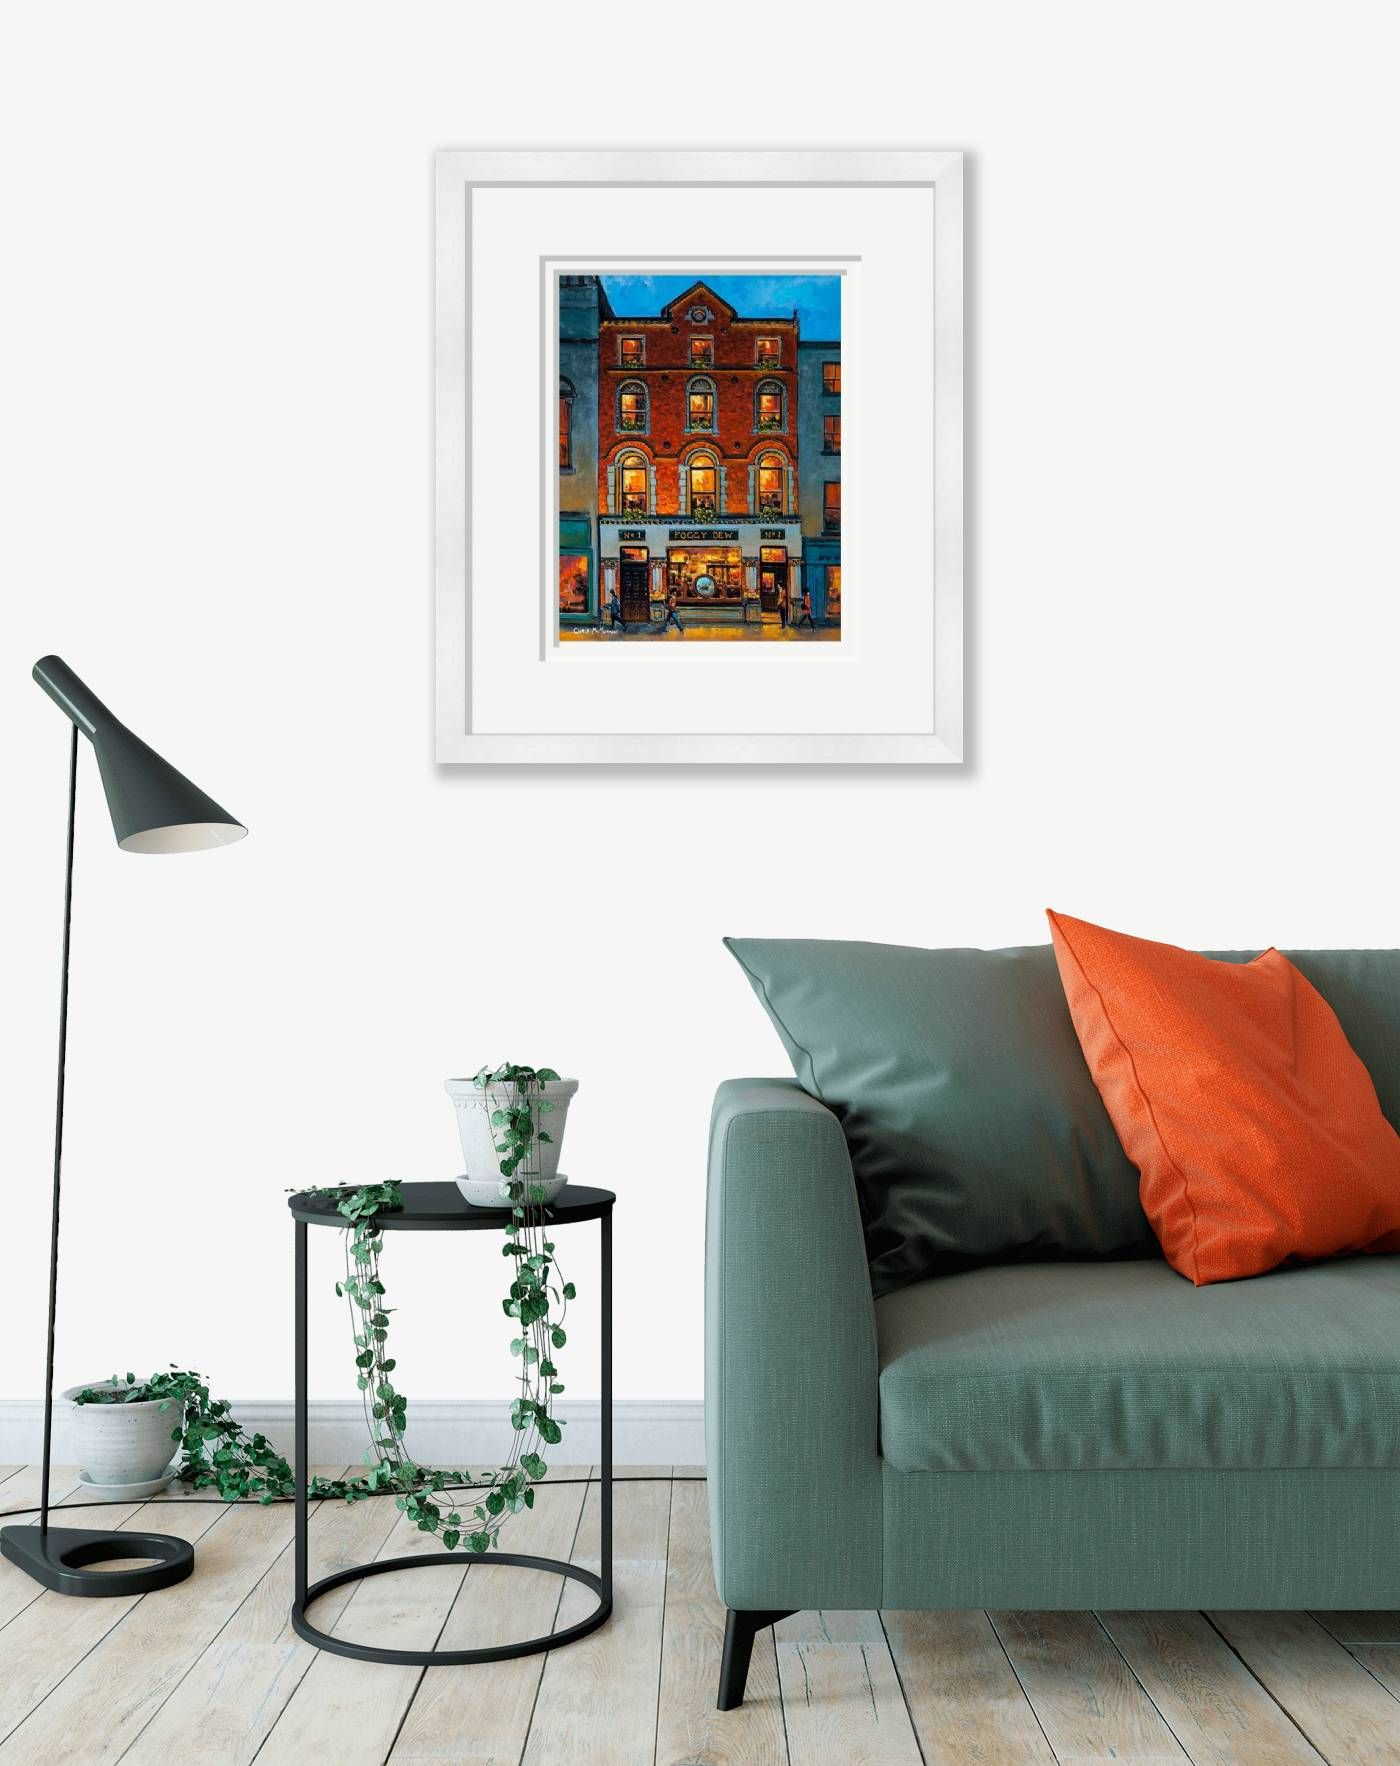 Large framed - The Foggy Dew Pub, Central Bank Square, Dublin - 719 by Chris McMorrow